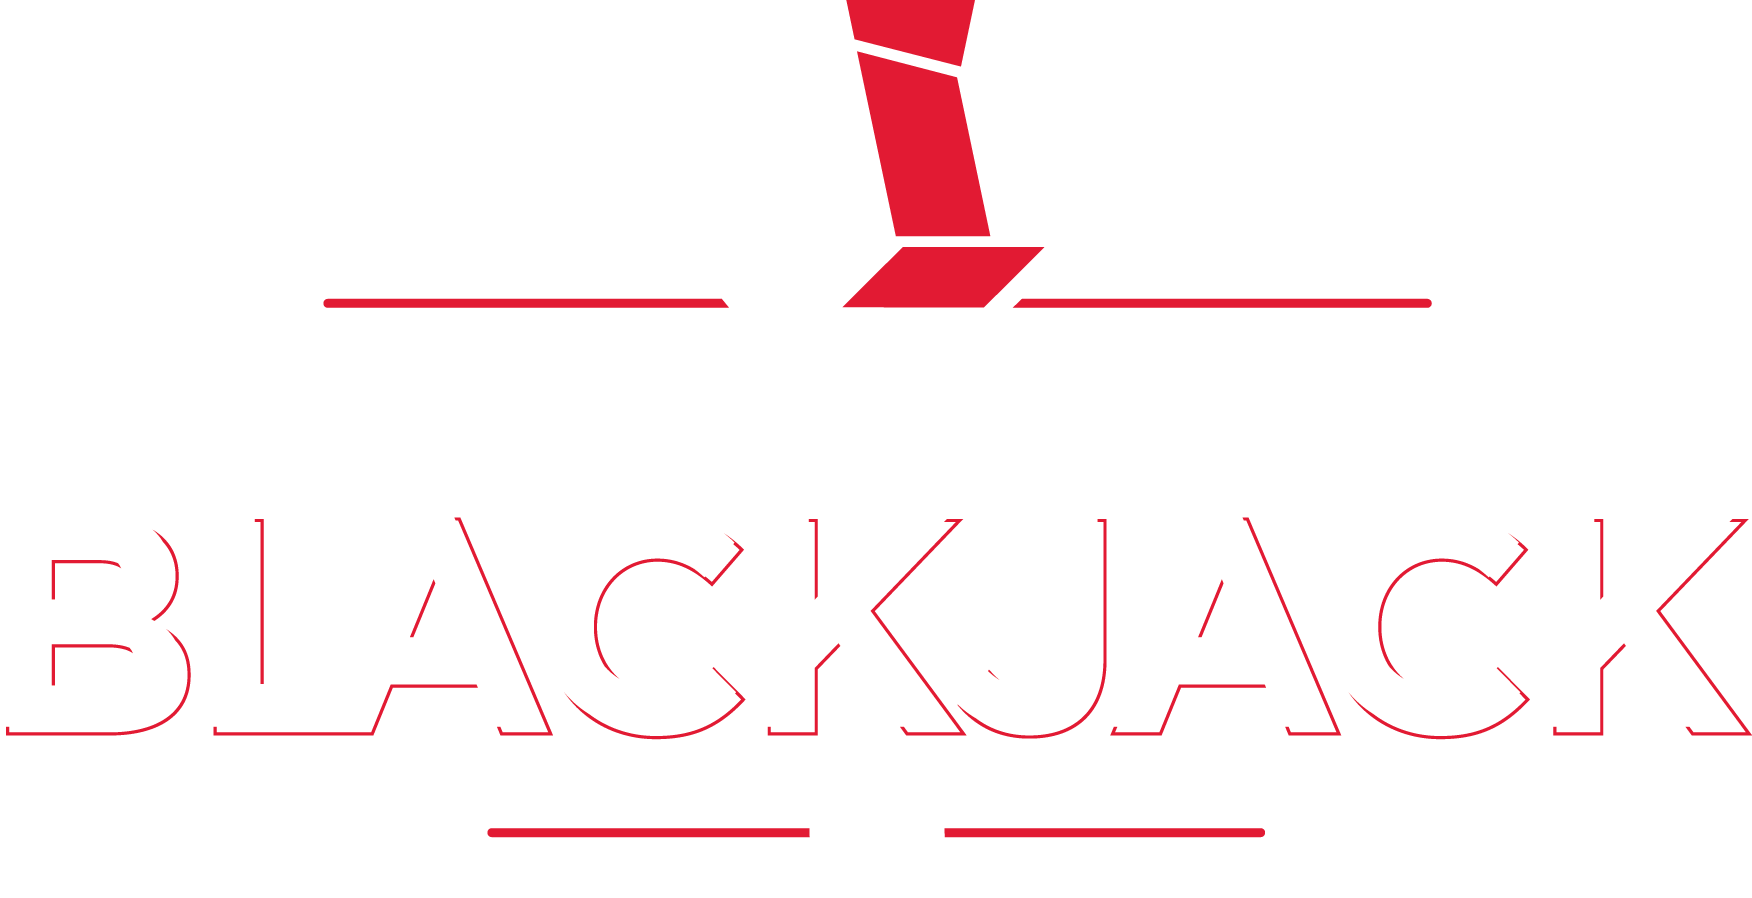 Electronic blackjack